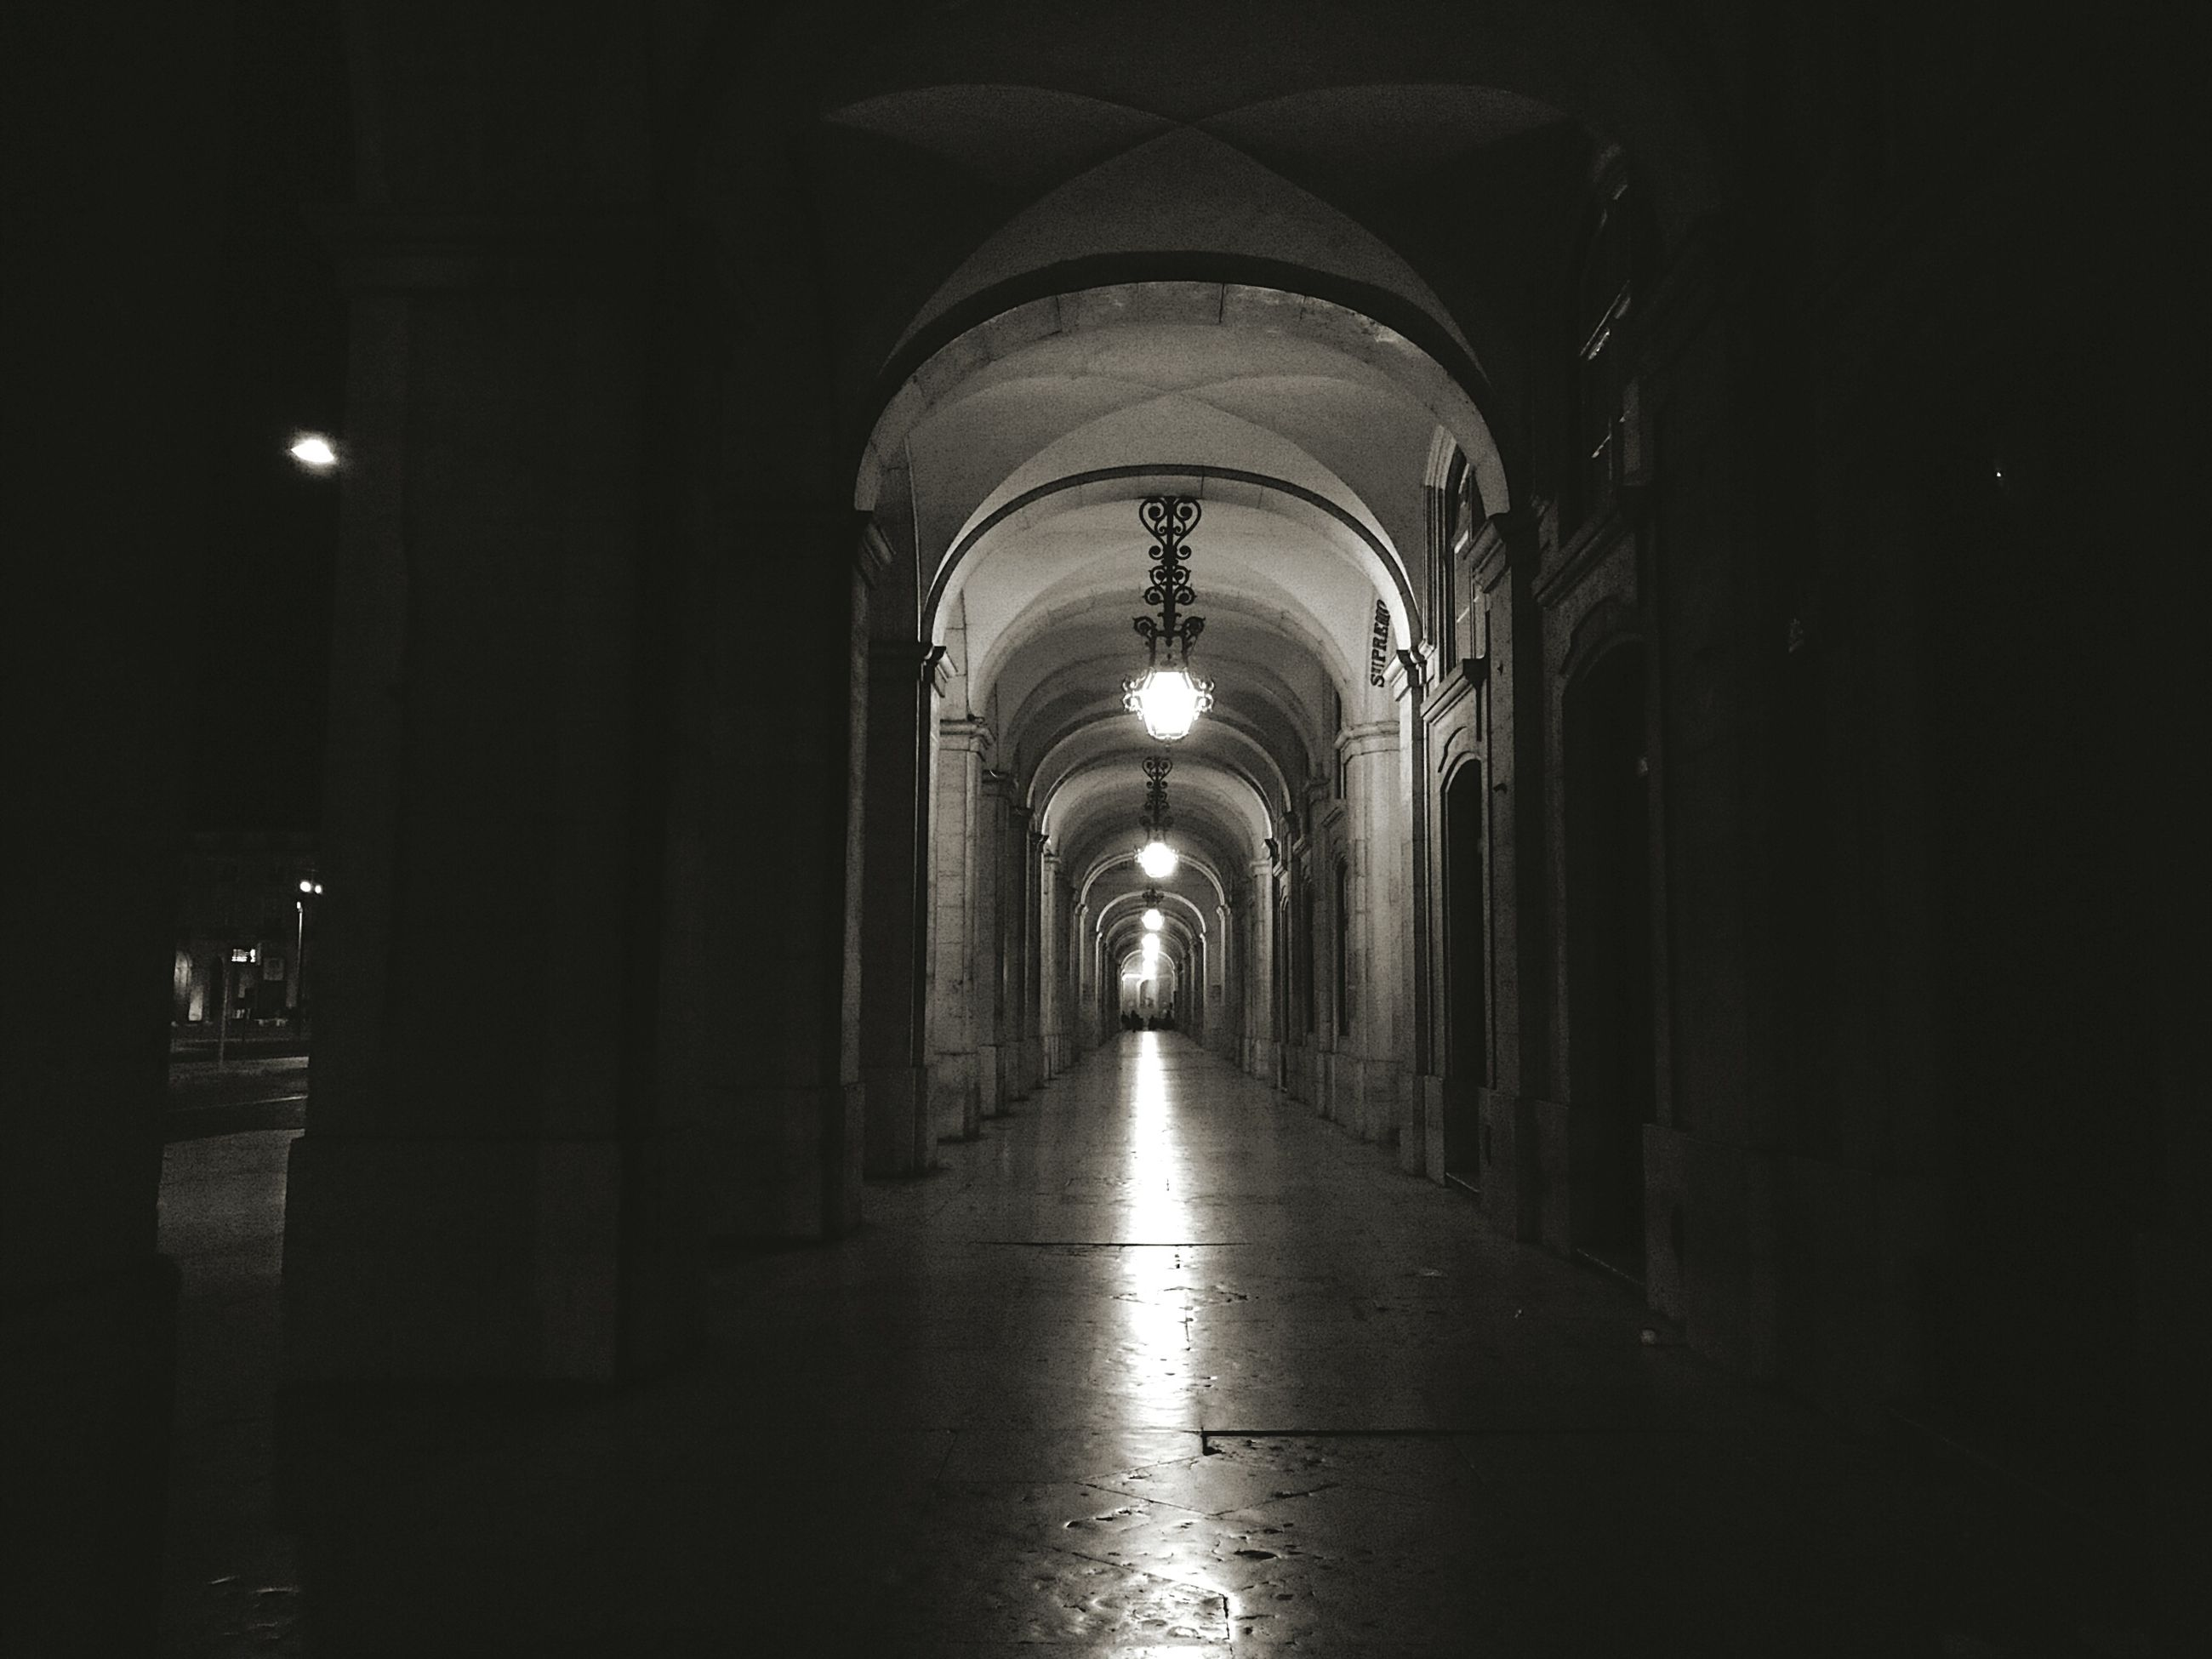 the way forward, diminishing perspective, indoors, illuminated, arch, architecture, built structure, corridor, vanishing point, tunnel, lighting equipment, night, empty, in a row, dark, long, narrow, ceiling, archway, walkway